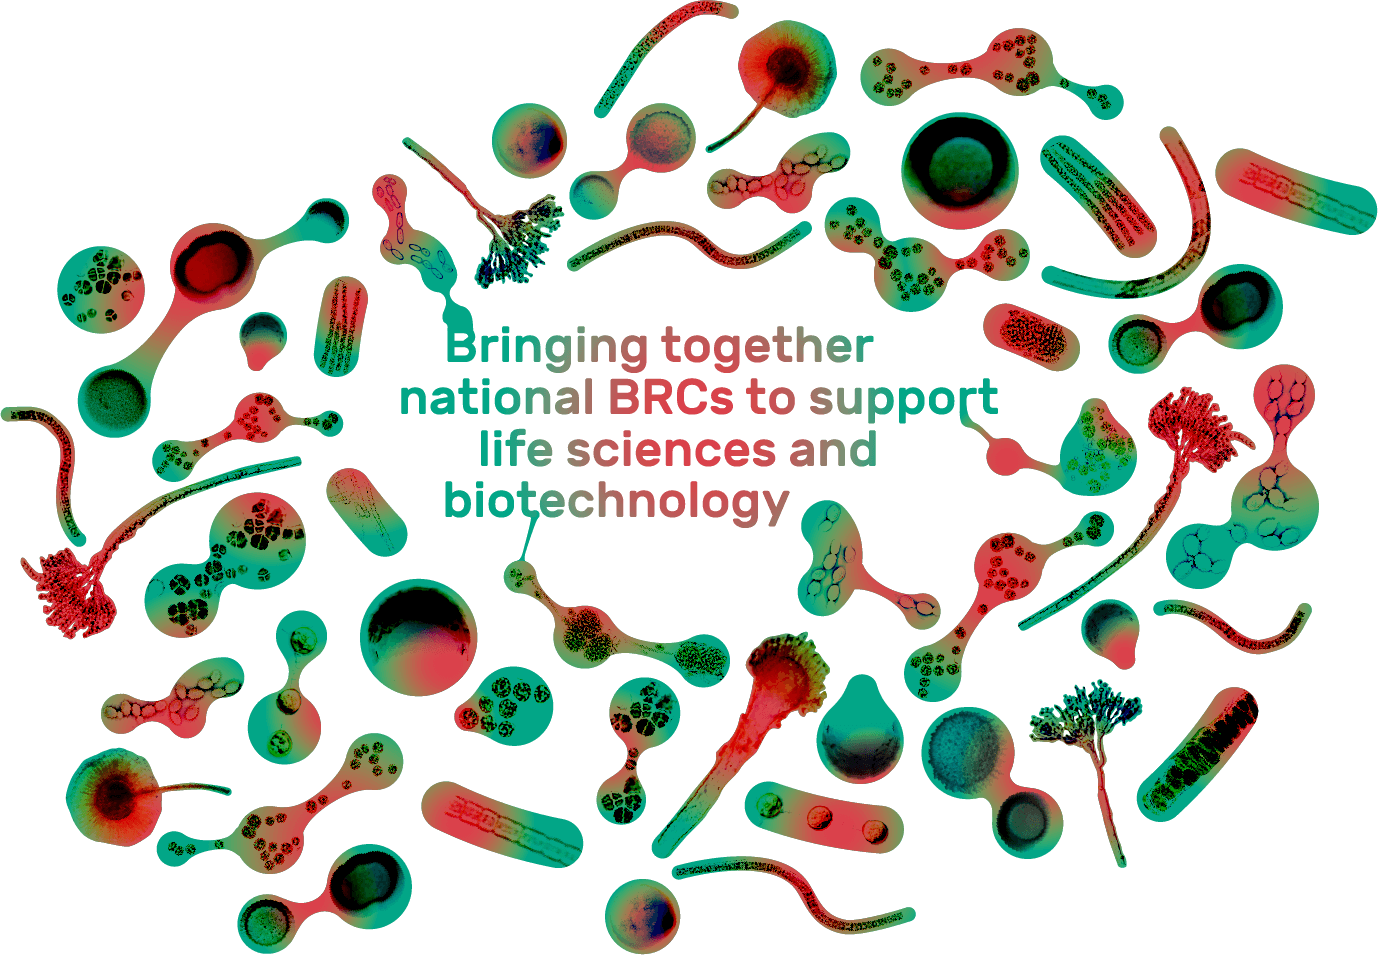 Bringing together national BRCs to support life sciences and biotechnology